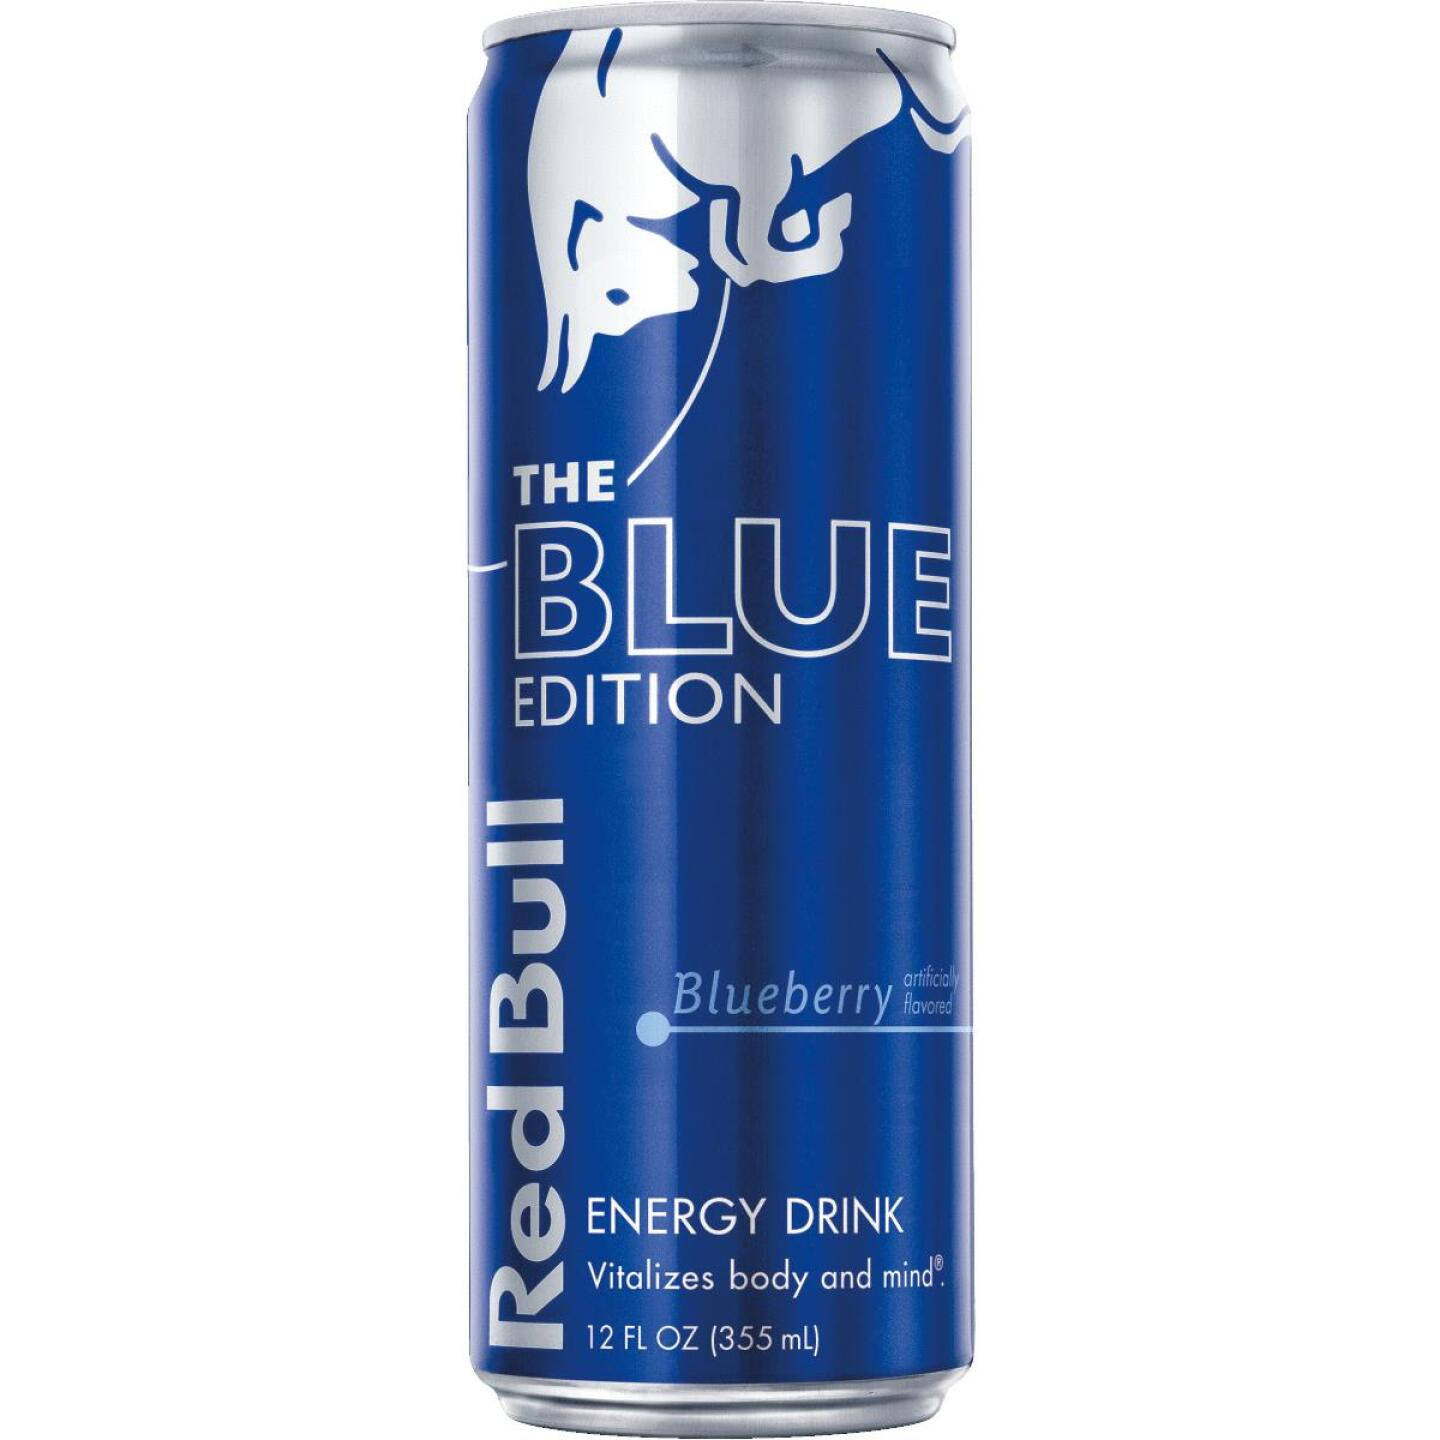 Red Bull 12 Oz. Blueberry Flavor Energy Drink Image 1